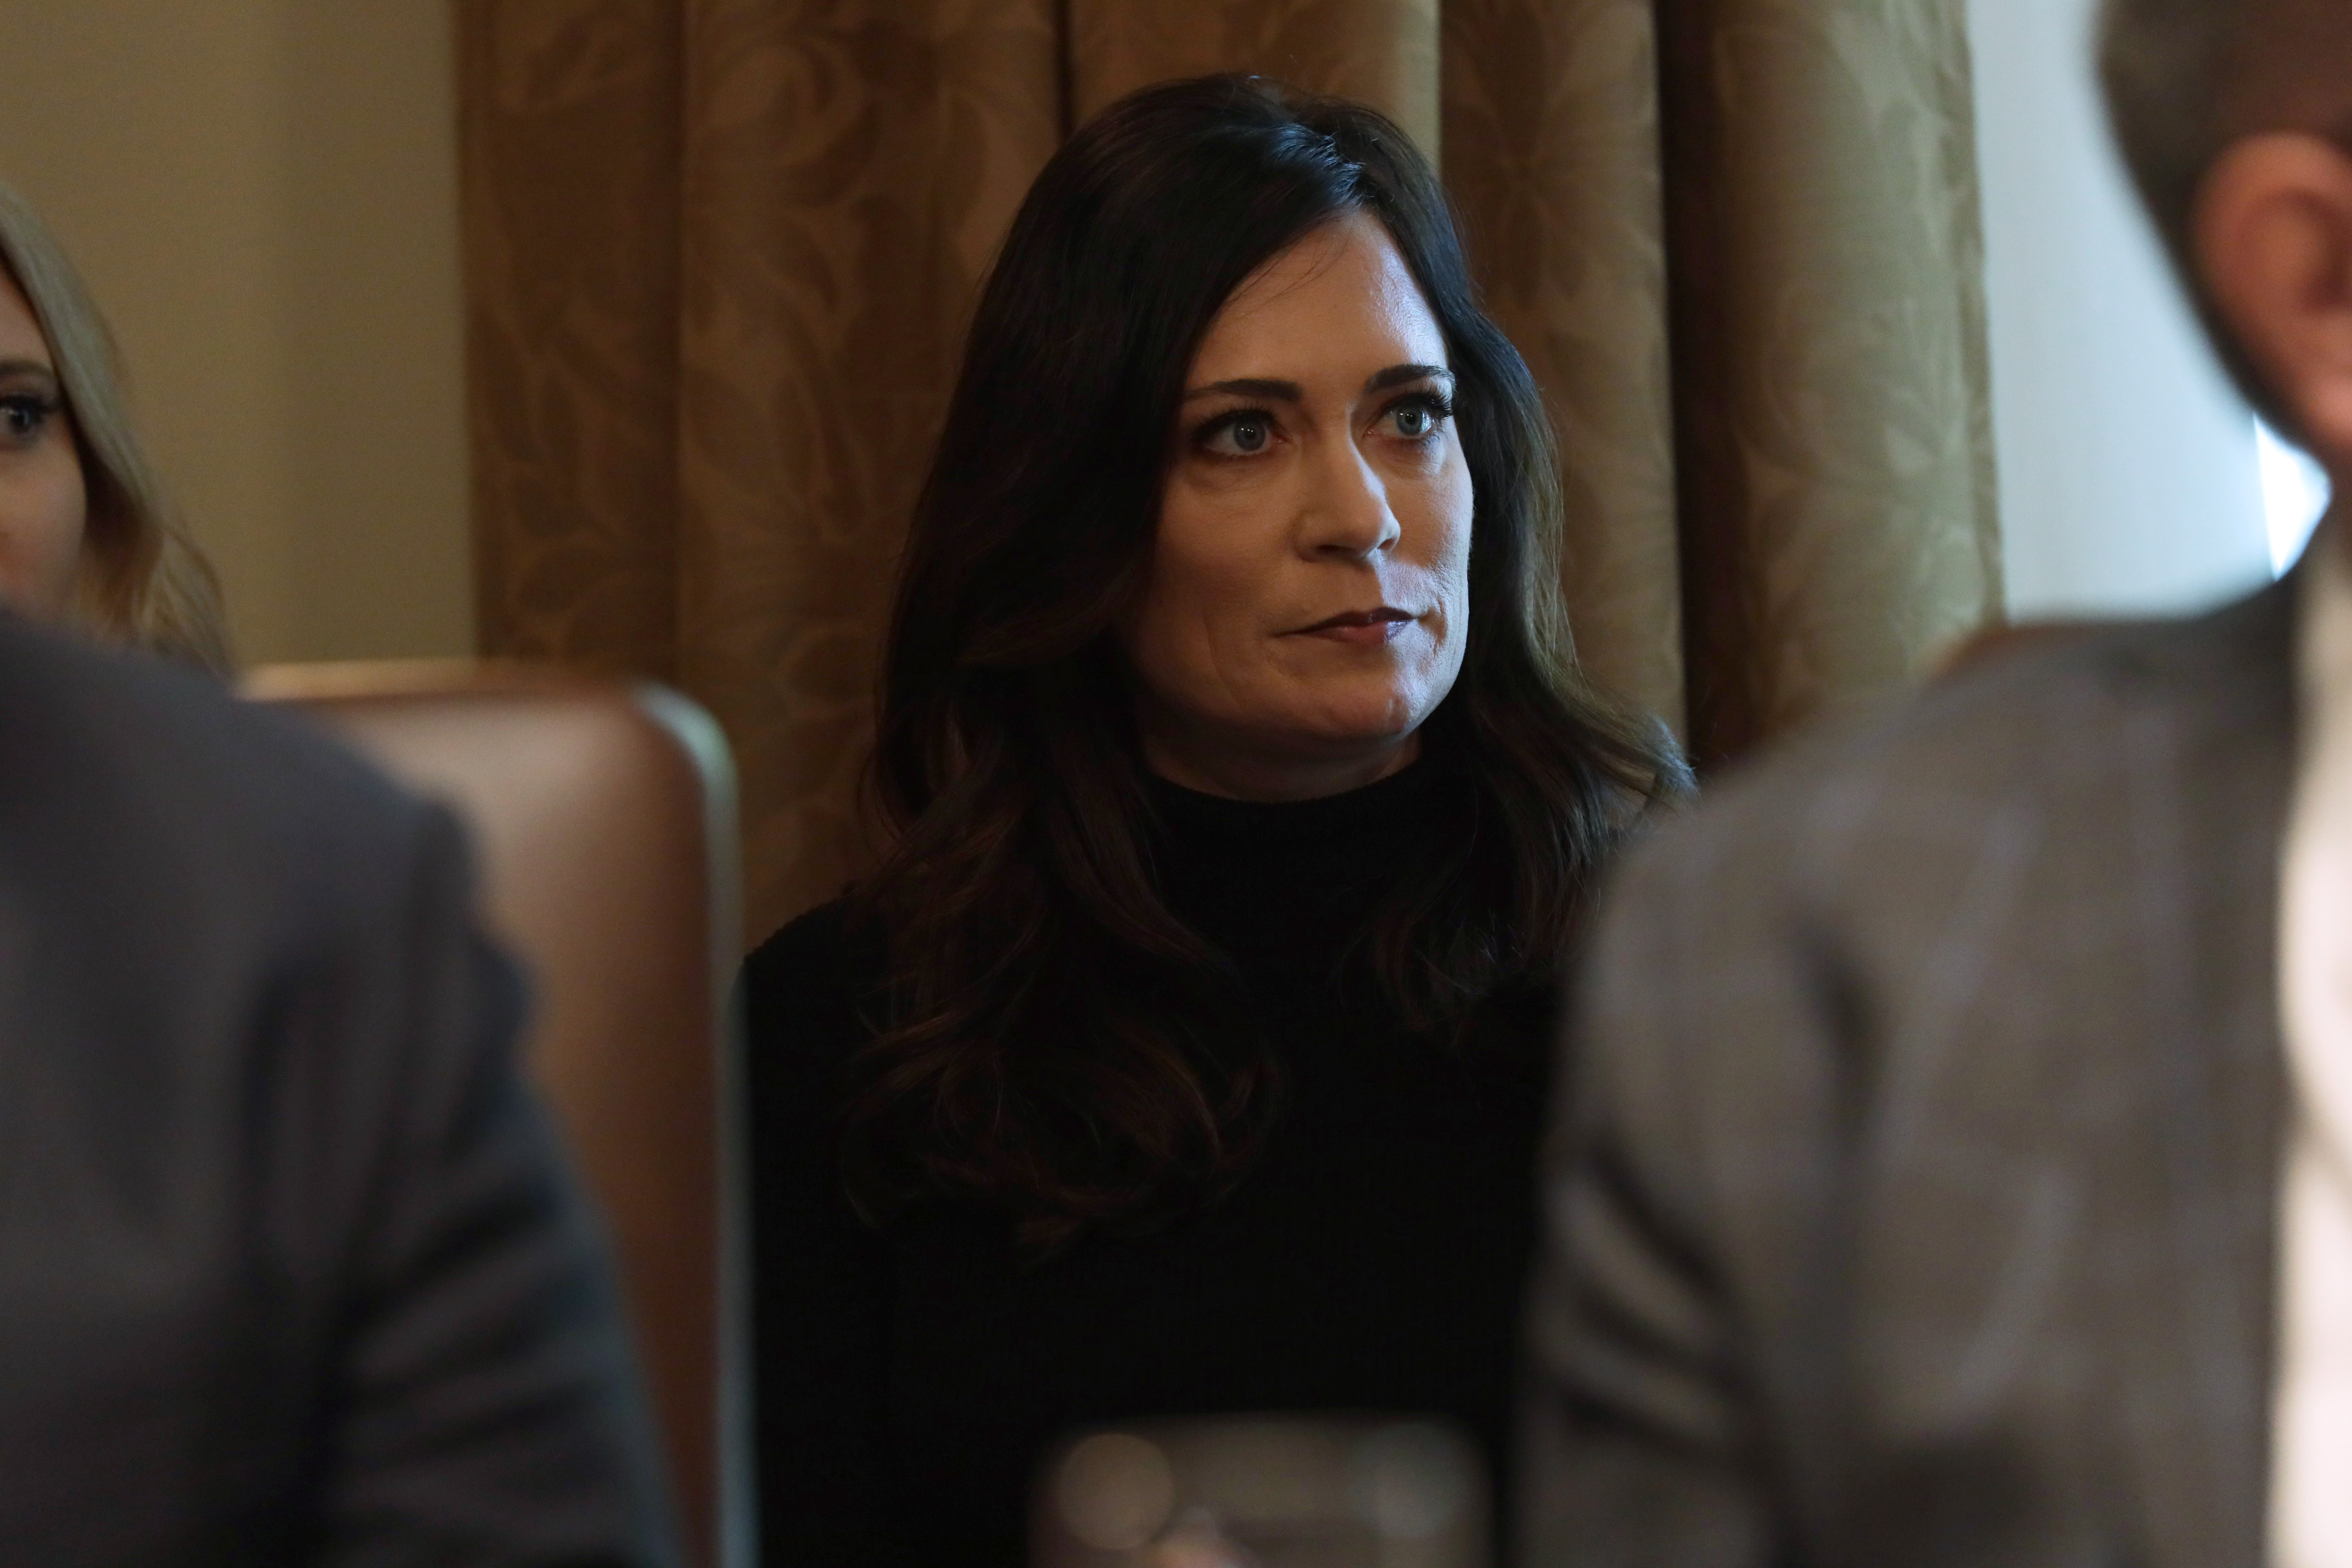 WASHINGTON, DC - OCTOBER 21: White House Press Secretary and Communications Director Stephanie Grisham listens during a cabinet meeting in the Cabinet Room of the White House October 21, 2019 in Washington, DC. President Trump held a cabinet meeting to discuss his administration's agenda and made extensive remarks about impeachment and the situation on the Syrian/Turkish border. (Photo by Alex Wong/Getty Images)